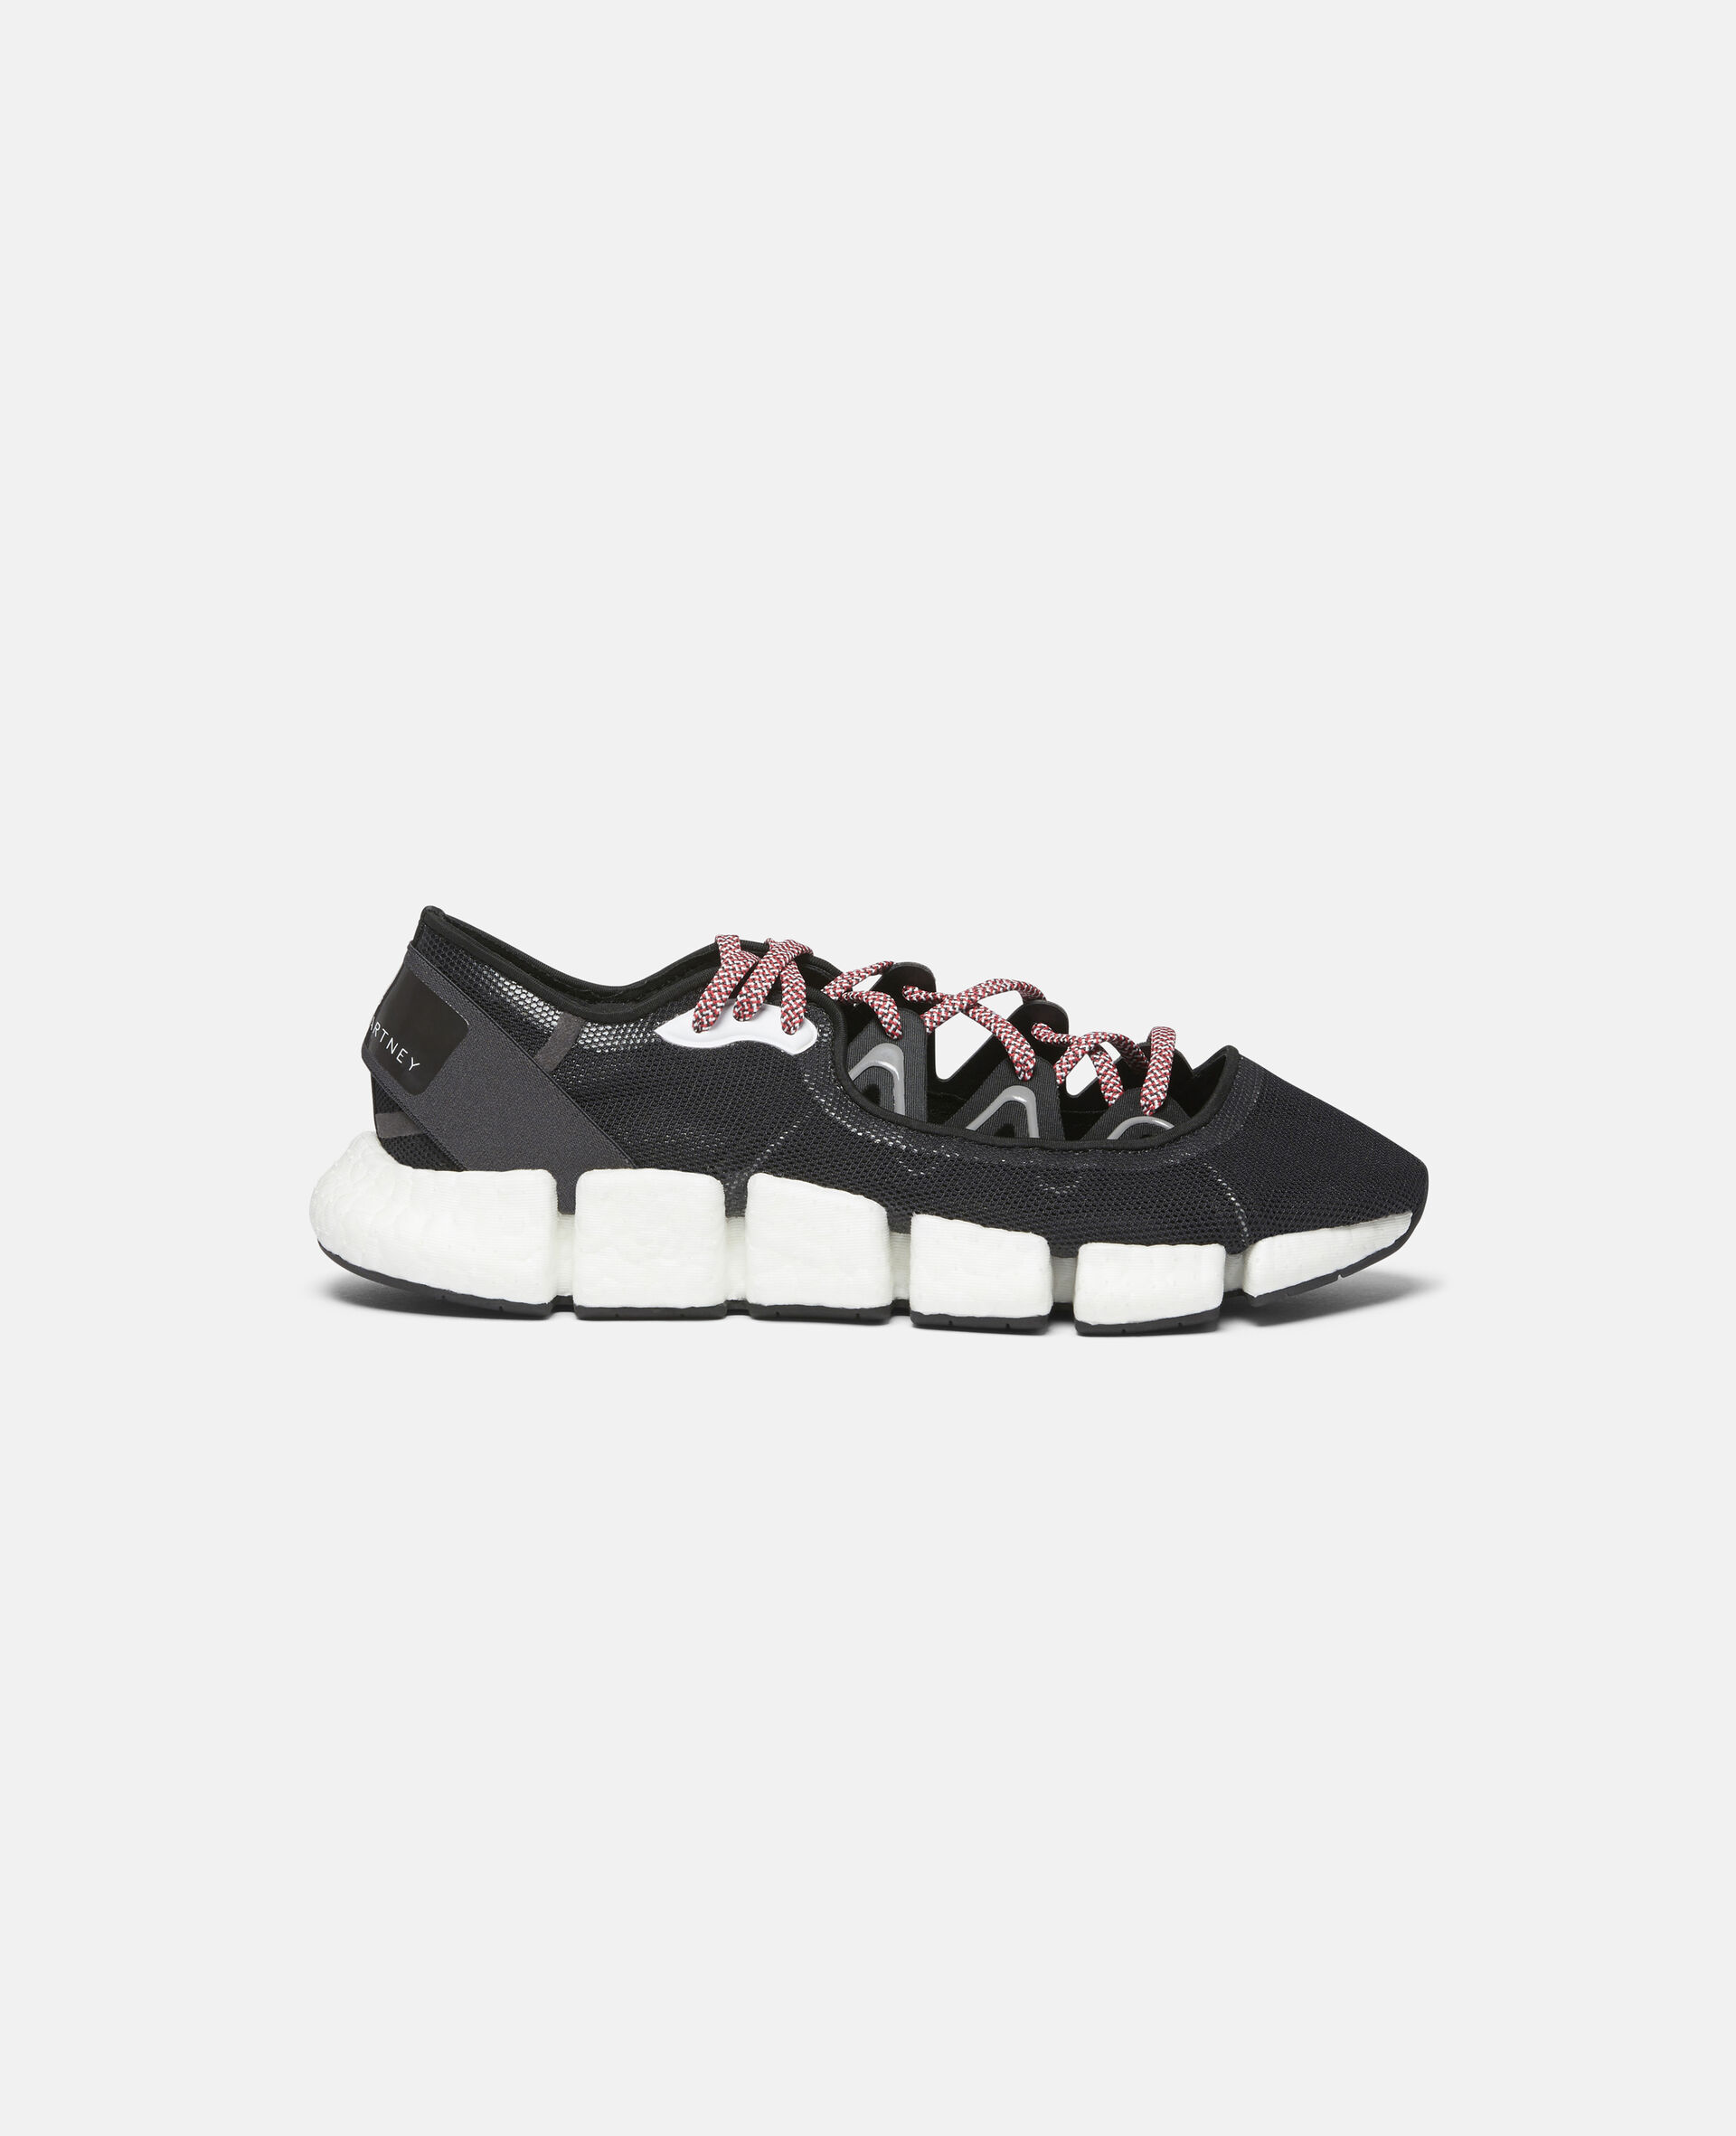 Climacool Vento 3-in-1 Running Sneakers-Multicolour-large image number 2